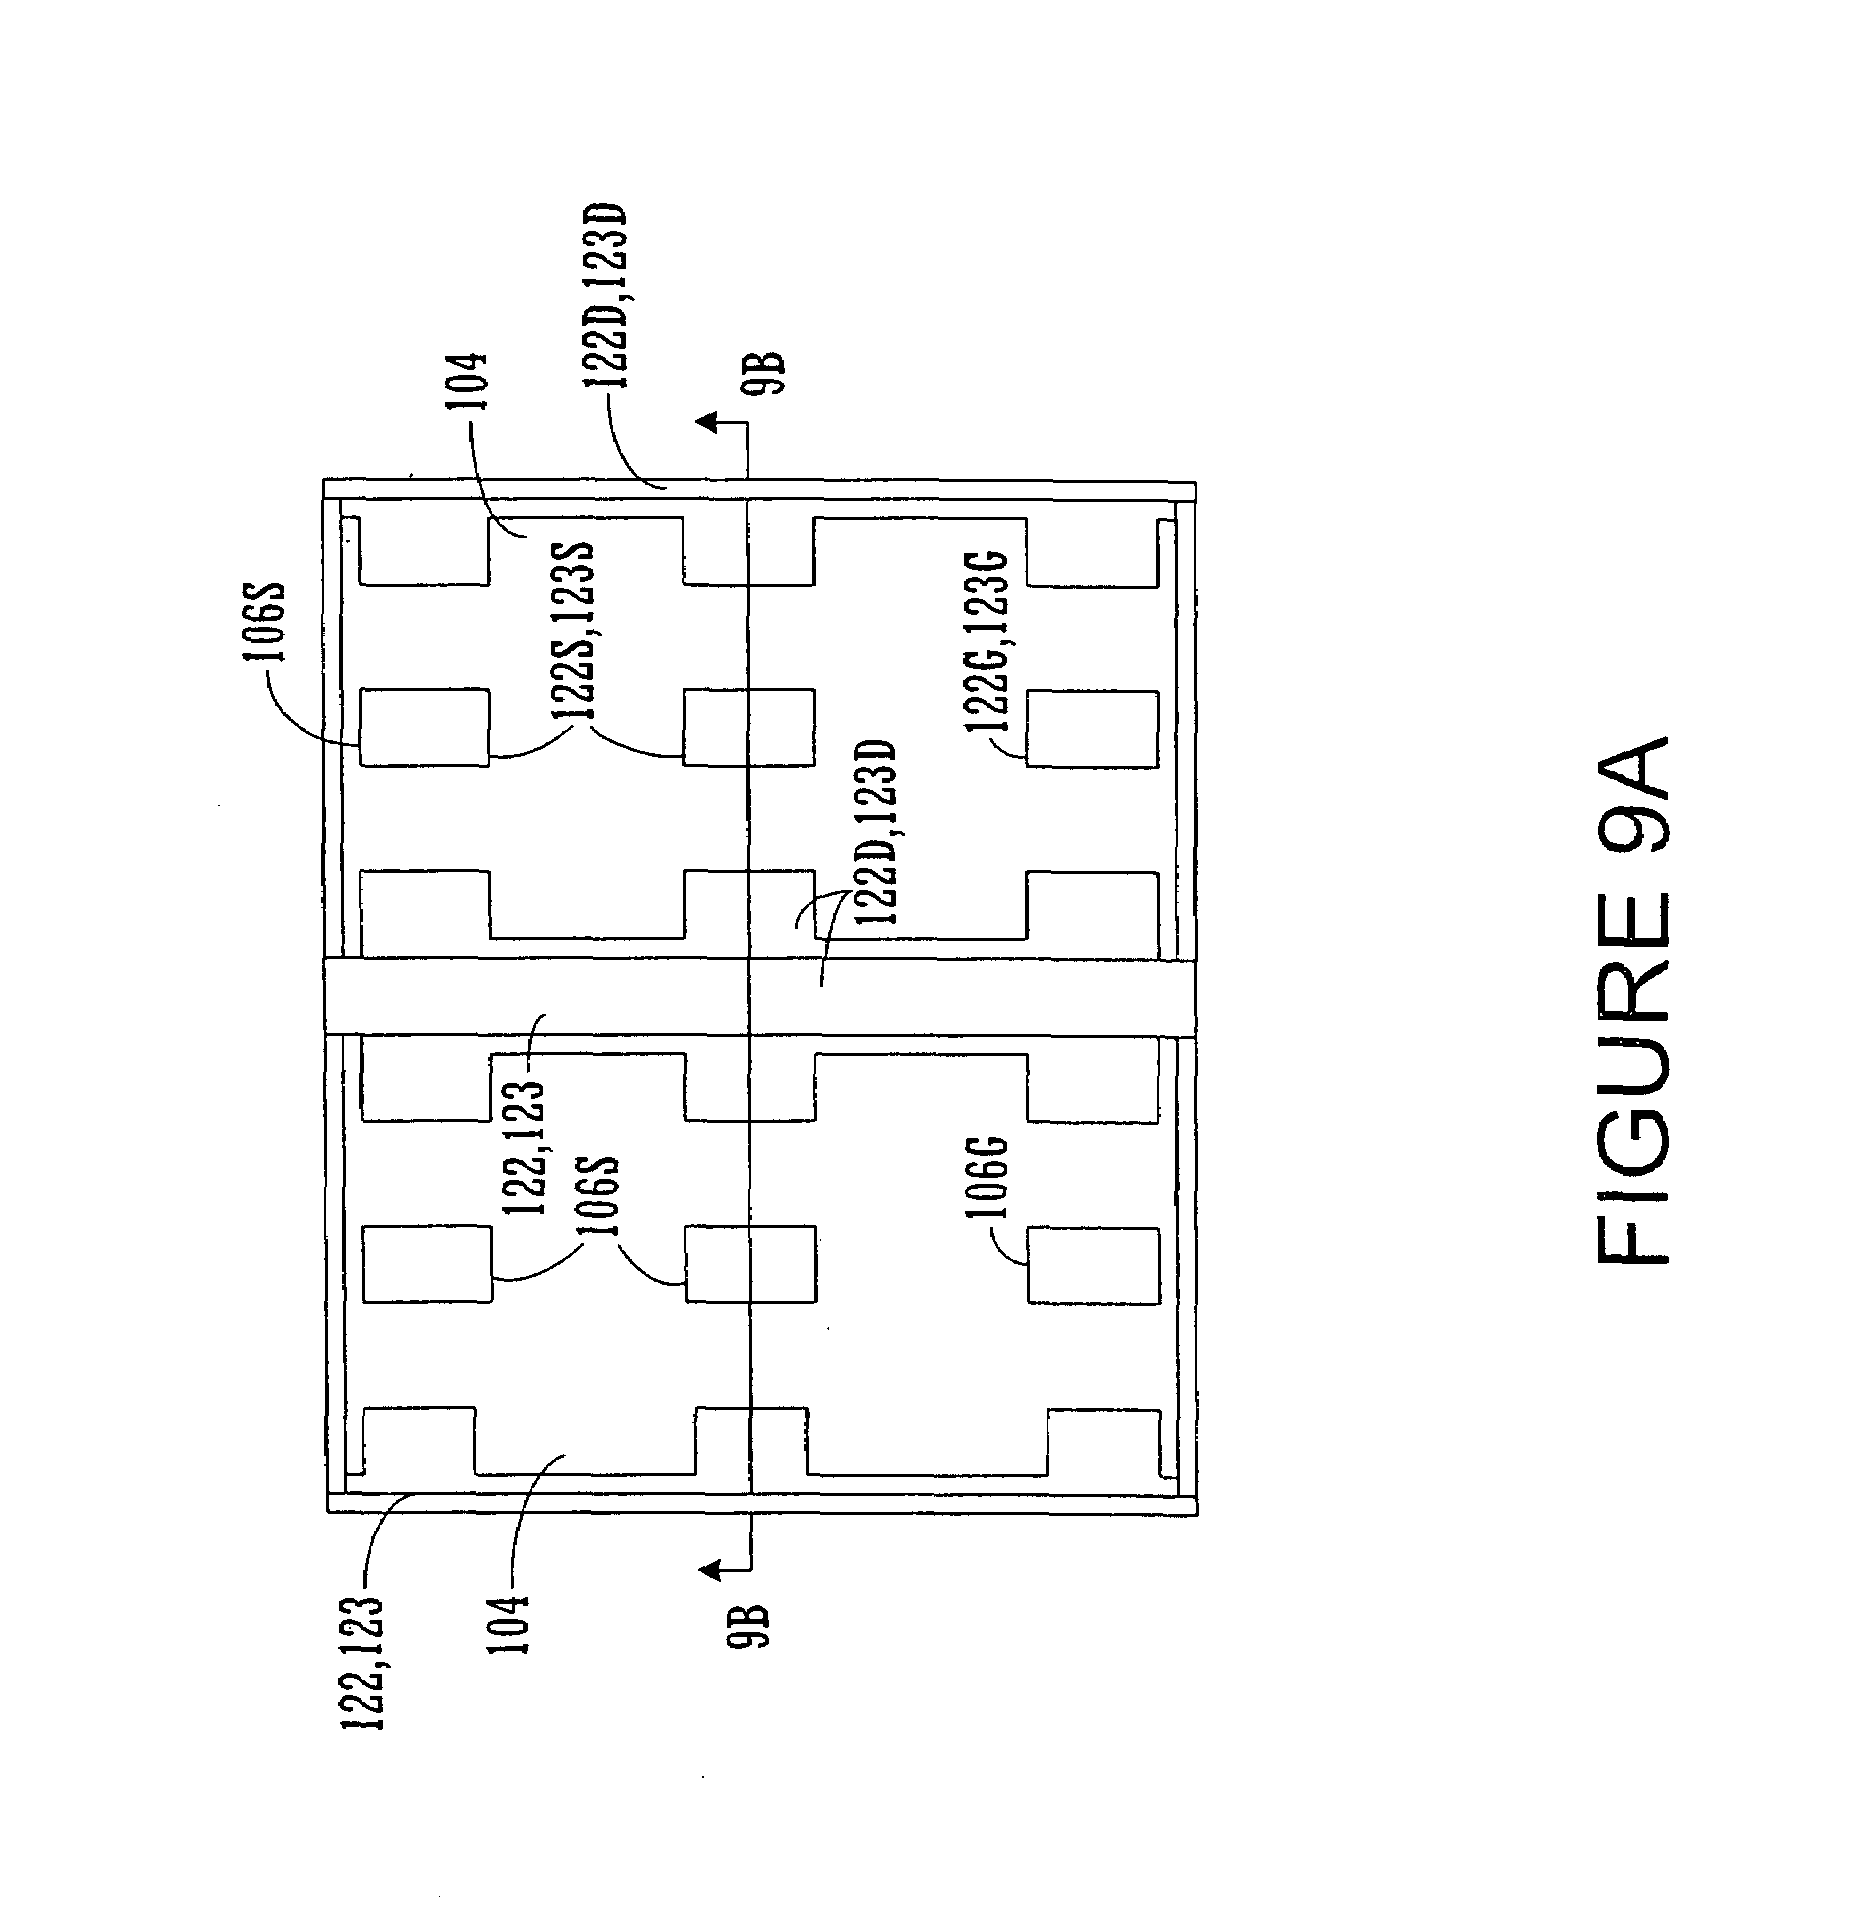 Patent Us7589396 Chip Scale Surface Mount Package For 122s Wiring Diagram Drawing